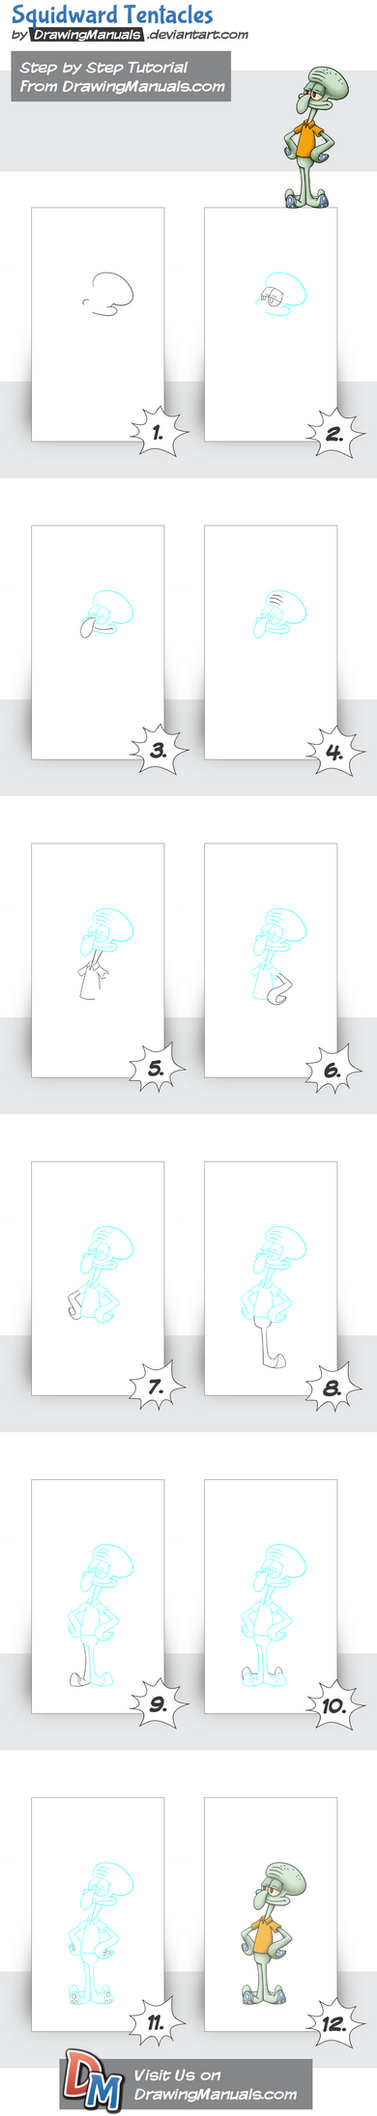 How-to-draw-squidward-tentacles-spongebob-squarepa by DrawingManuals